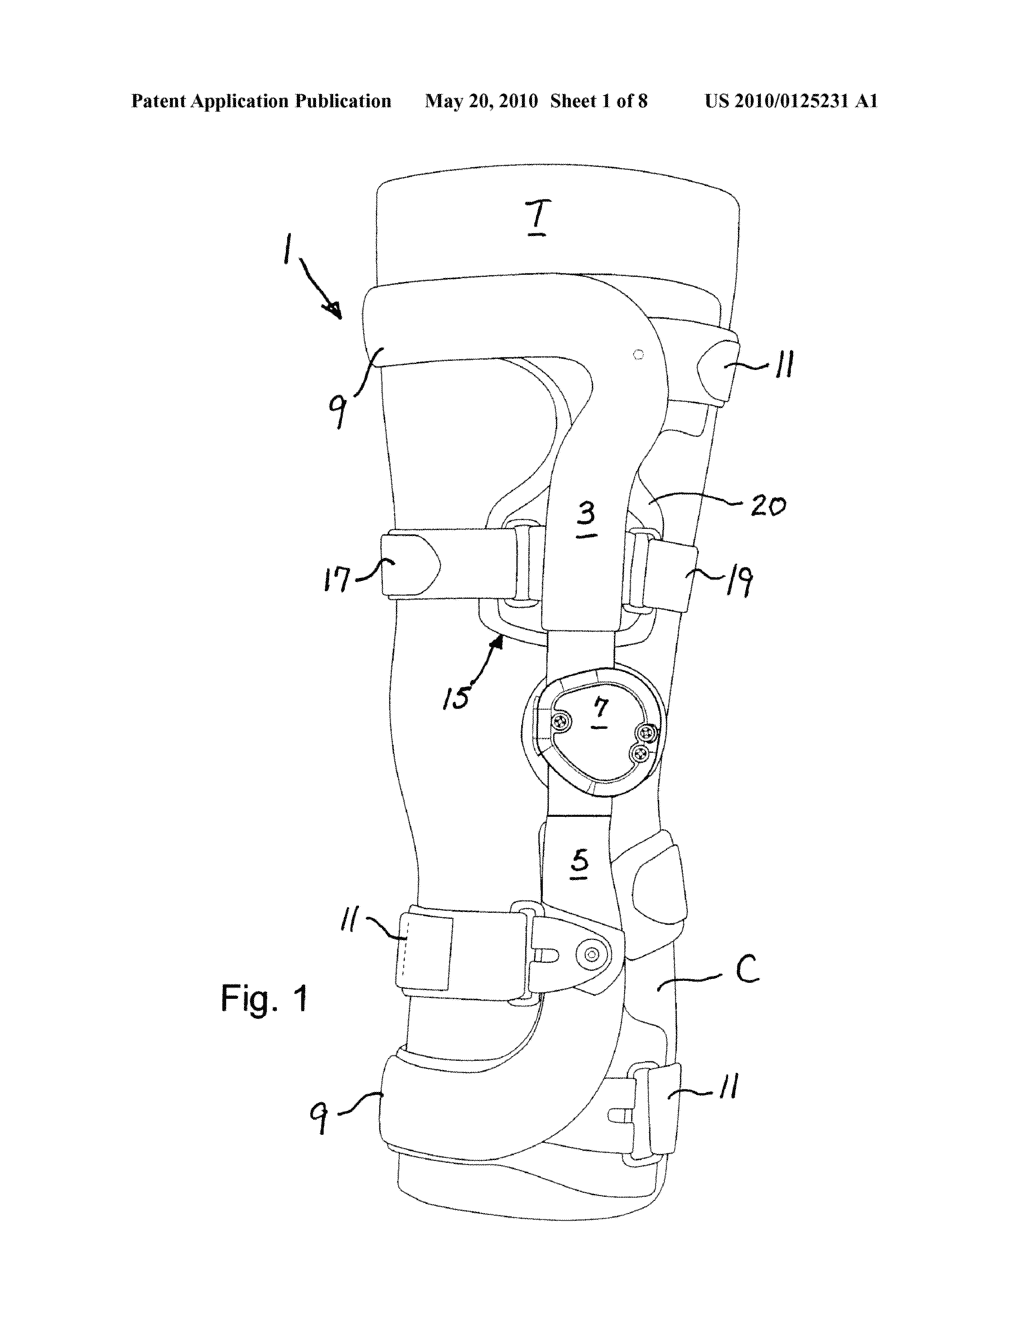 hight resolution of compression suspension strap assembly and knee brace equipped therewith diagram schematic and image 02